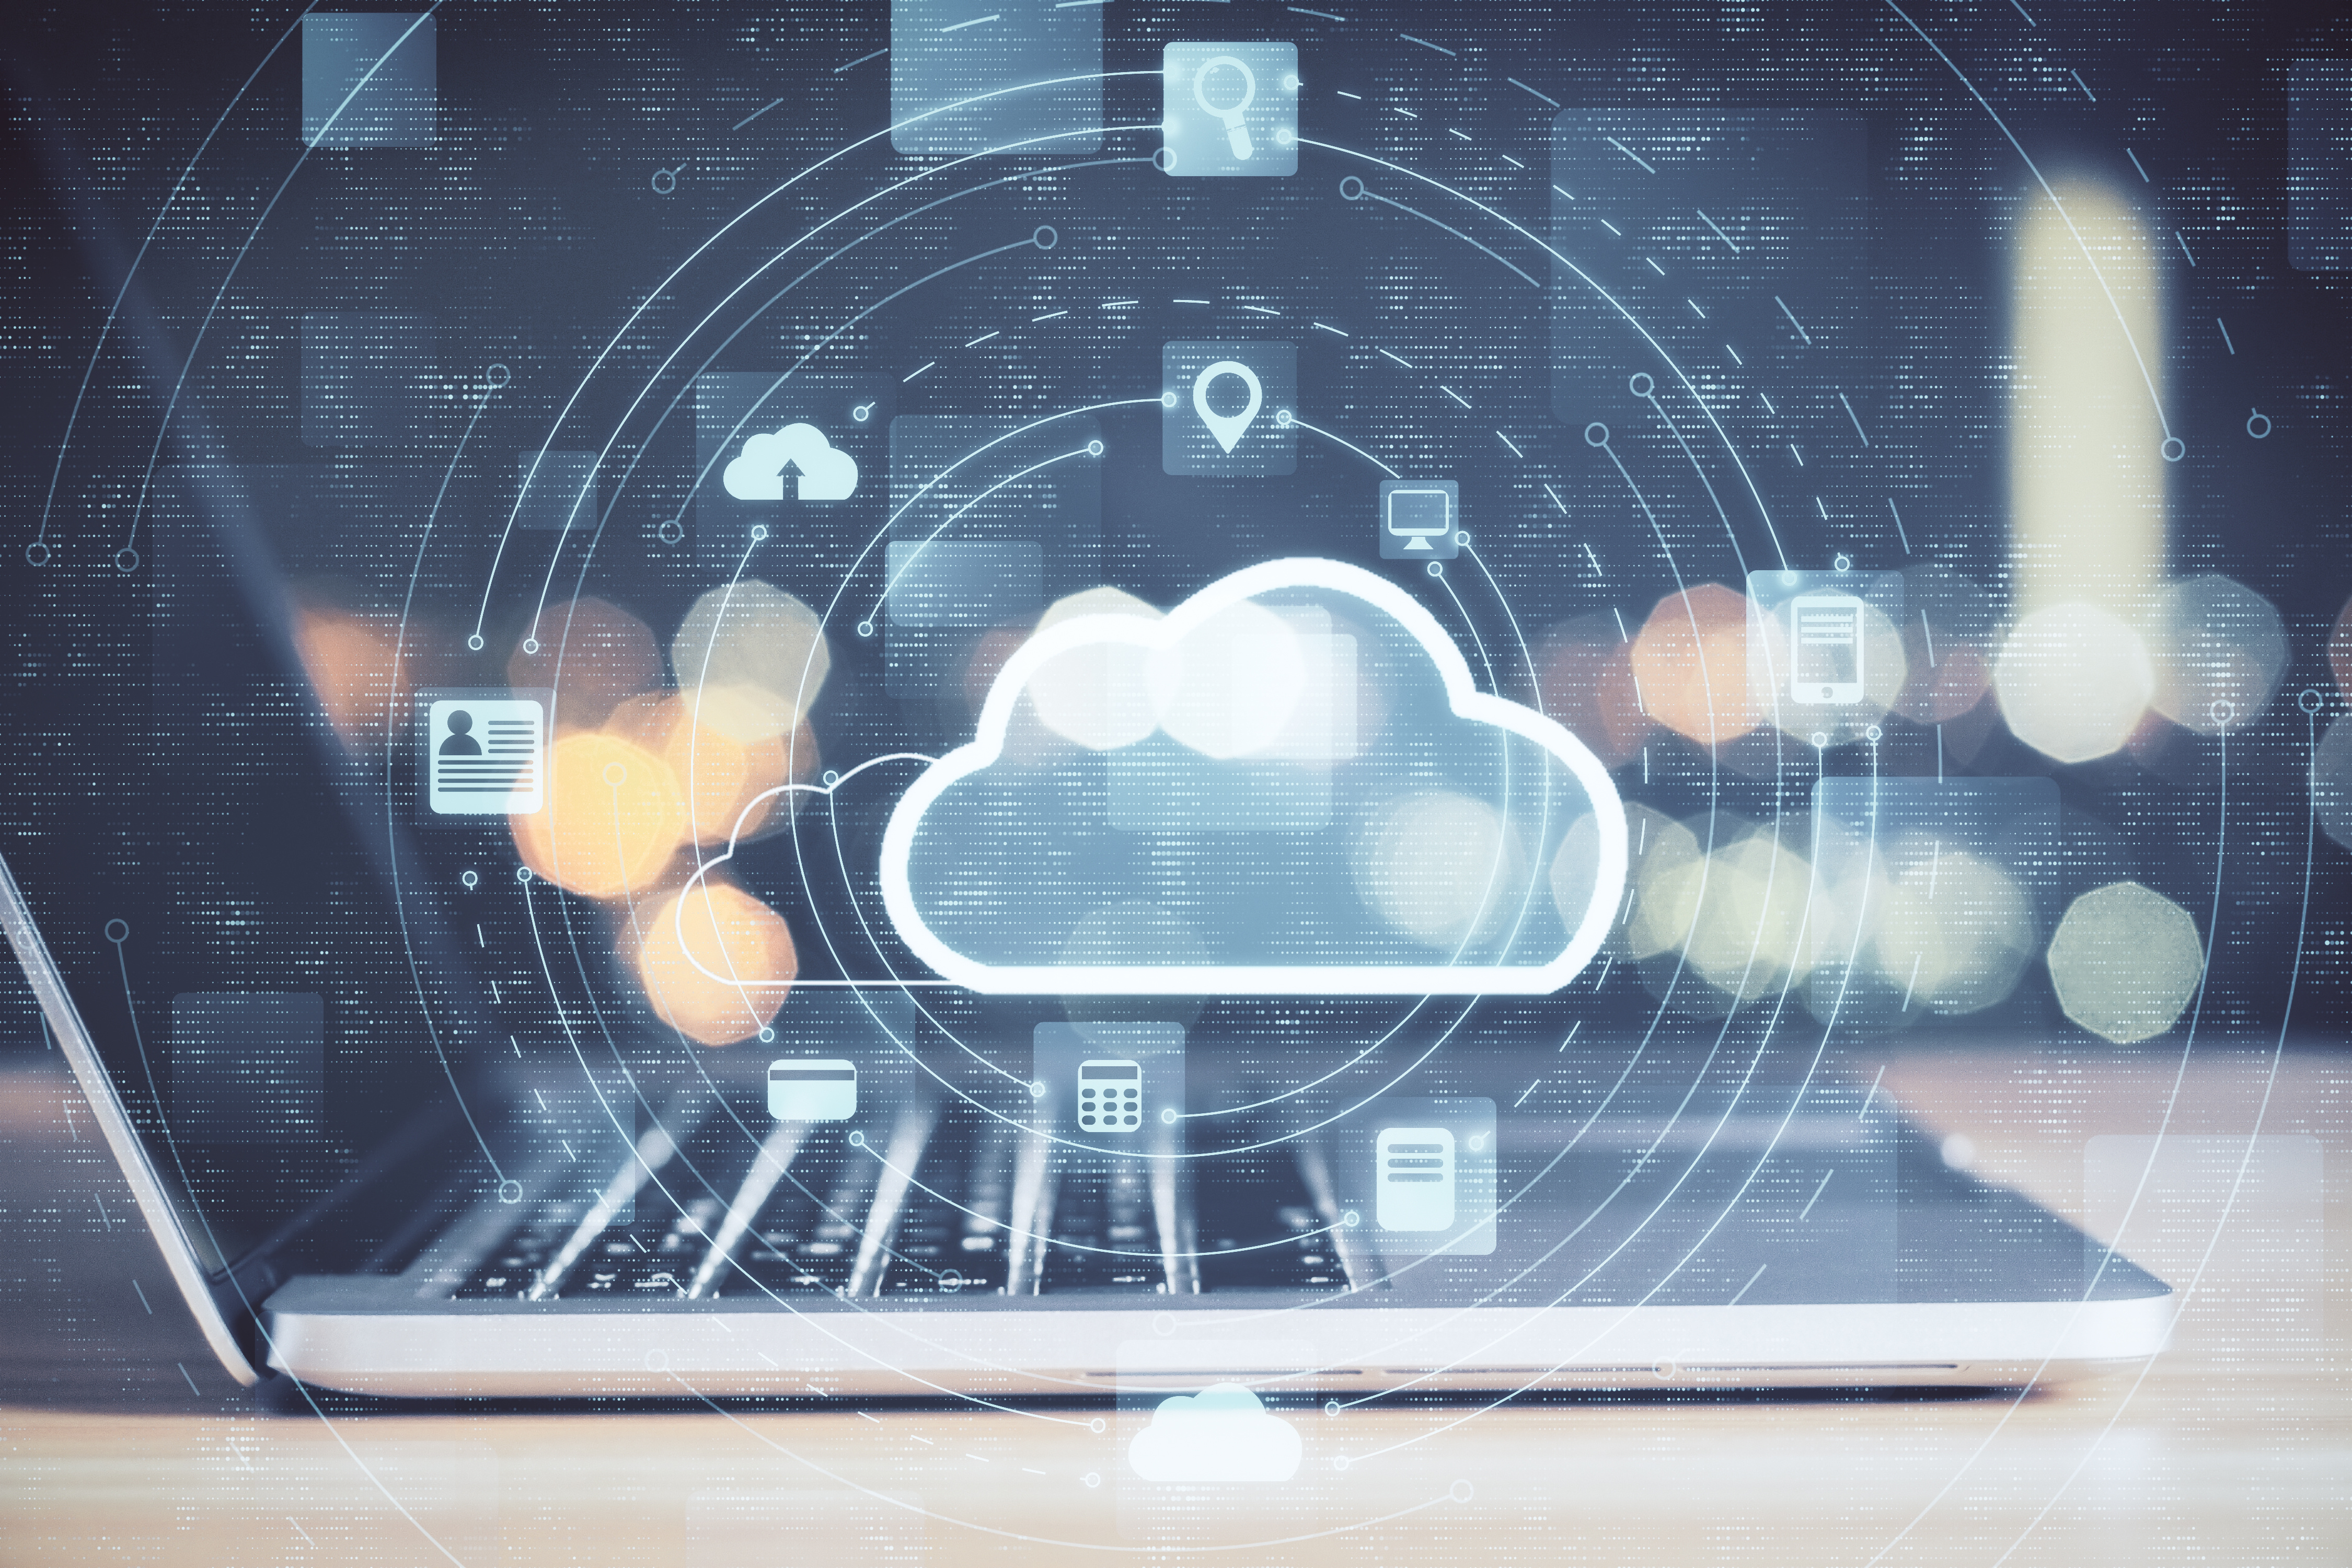 Laptop with cloud computing diagram. Cloud computing and communication concept.